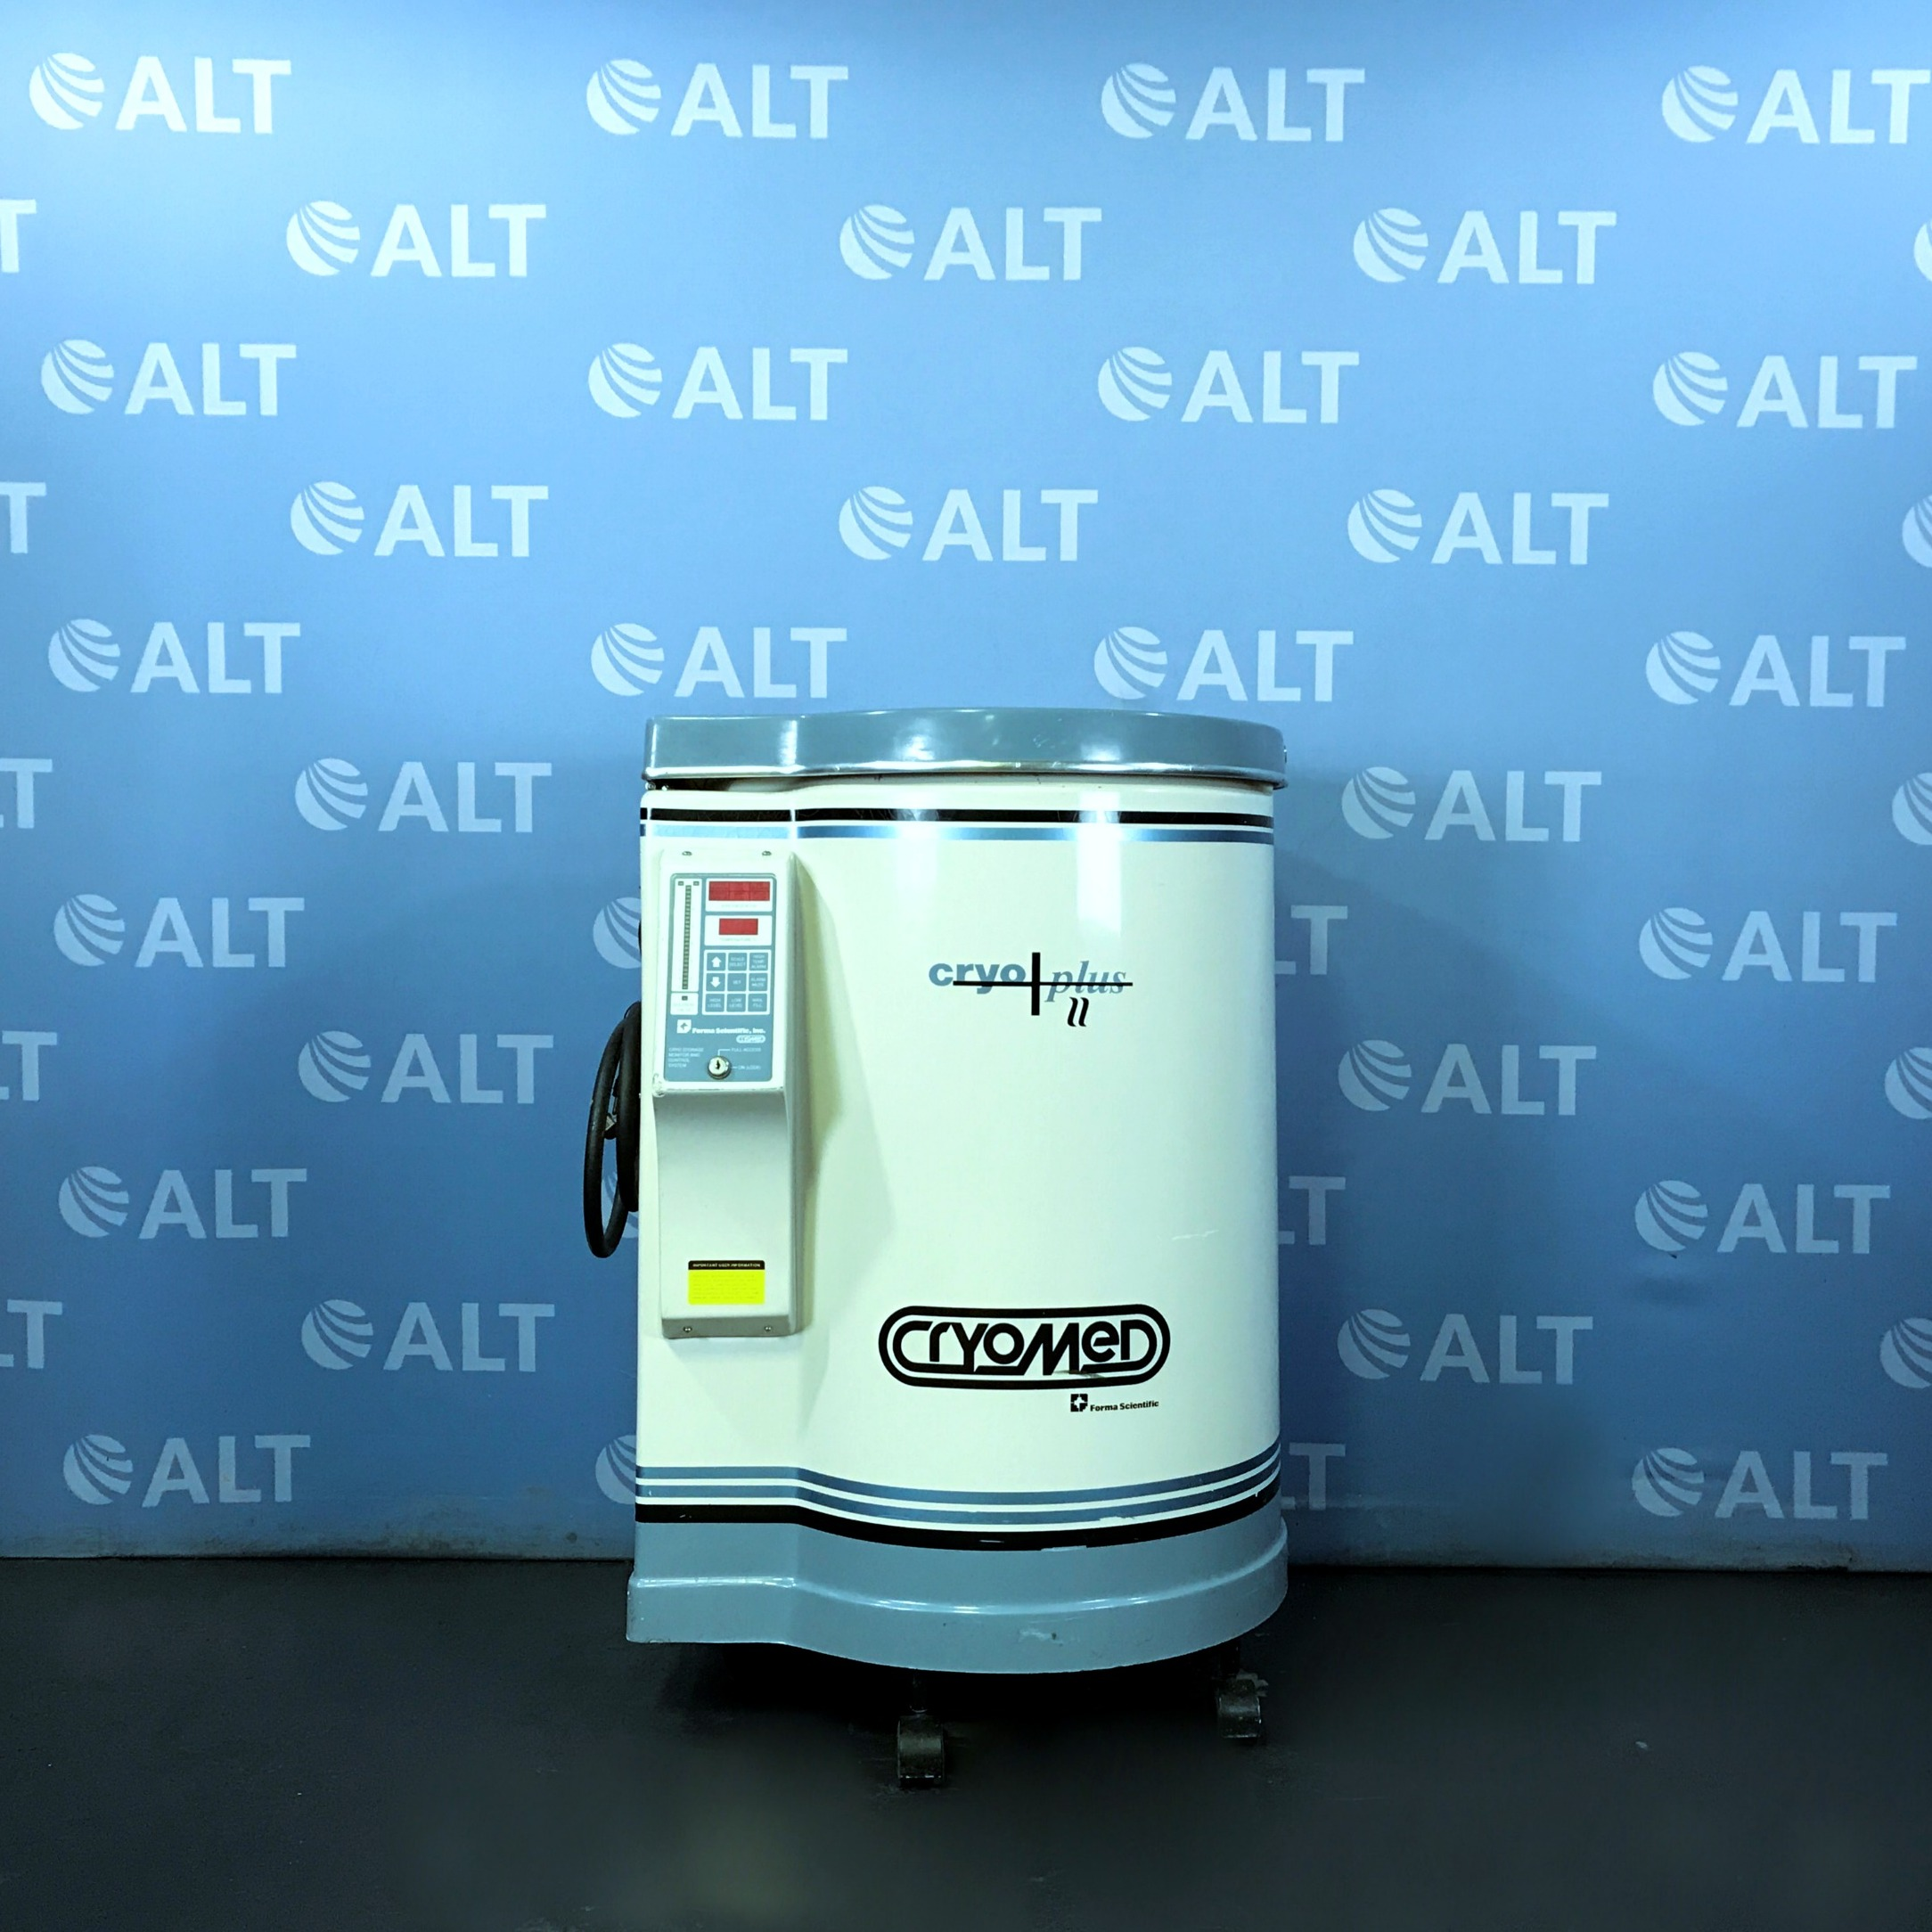 Cryomed / Cryoplus II Liquid Nitrogen Storage Vessel Model 8175 Name